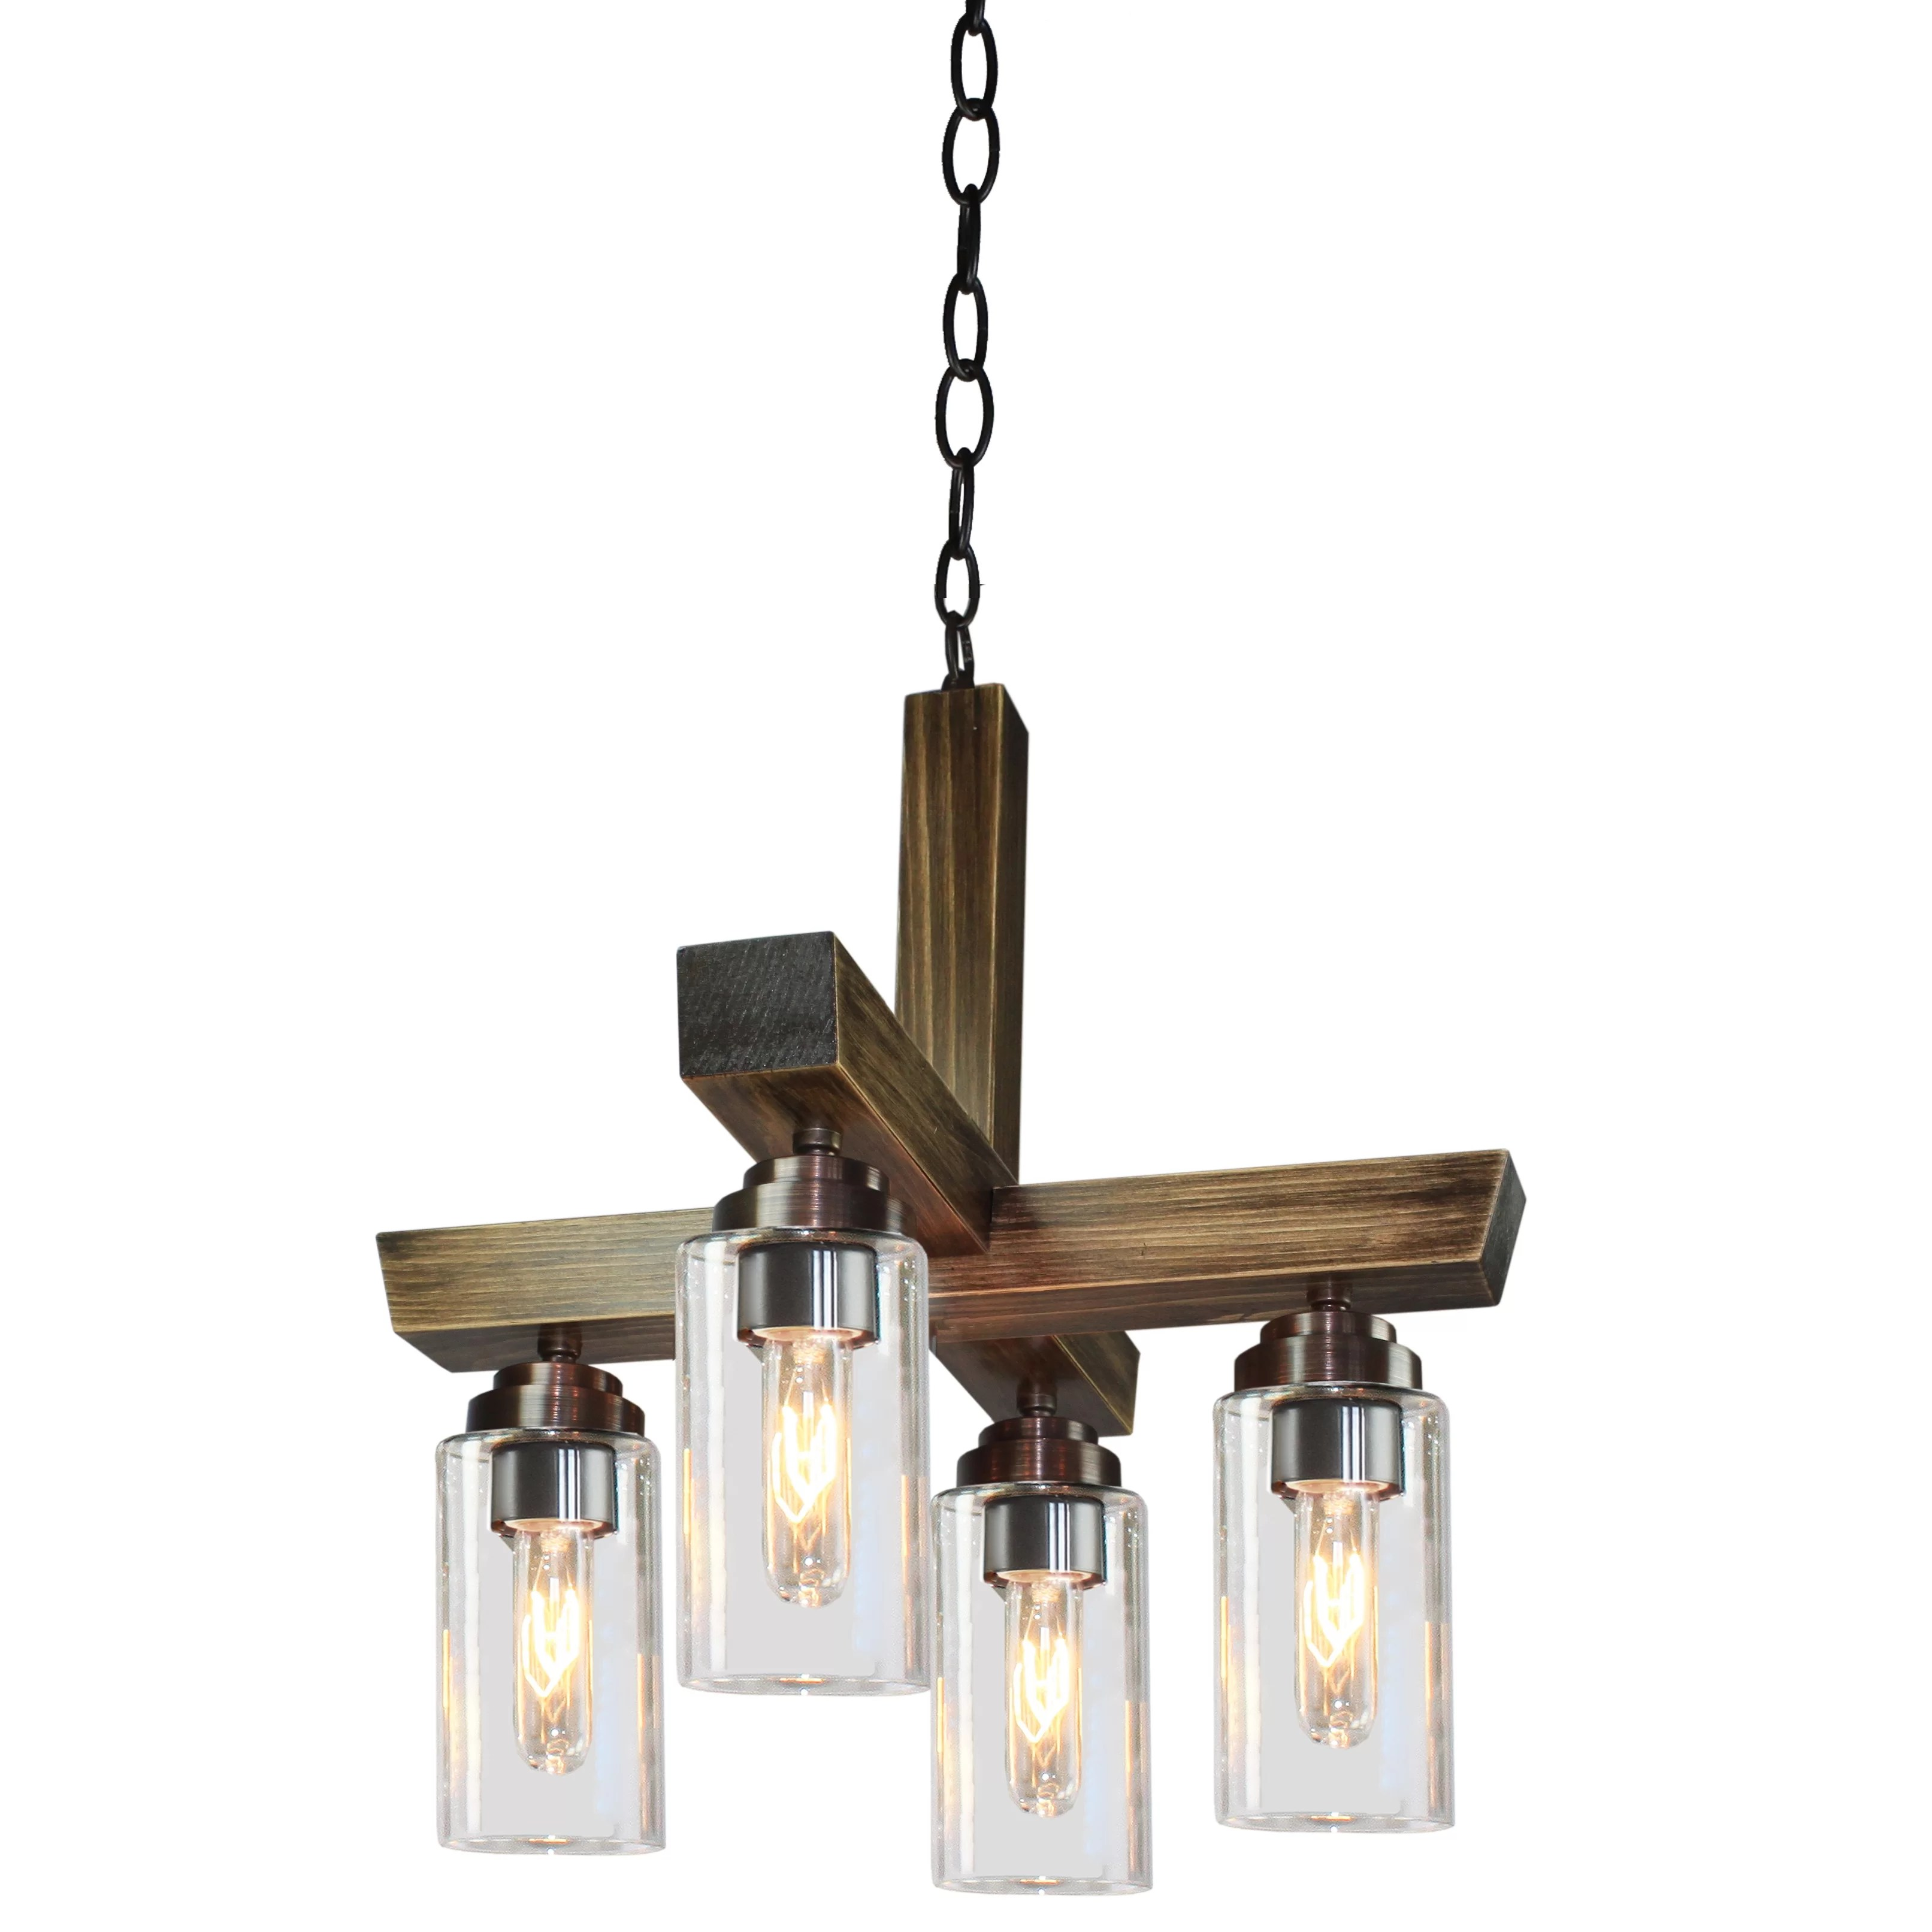 Pendant Island Lights Artcraft Lighting Home Glow 4 Light Kitchen Island Pendant